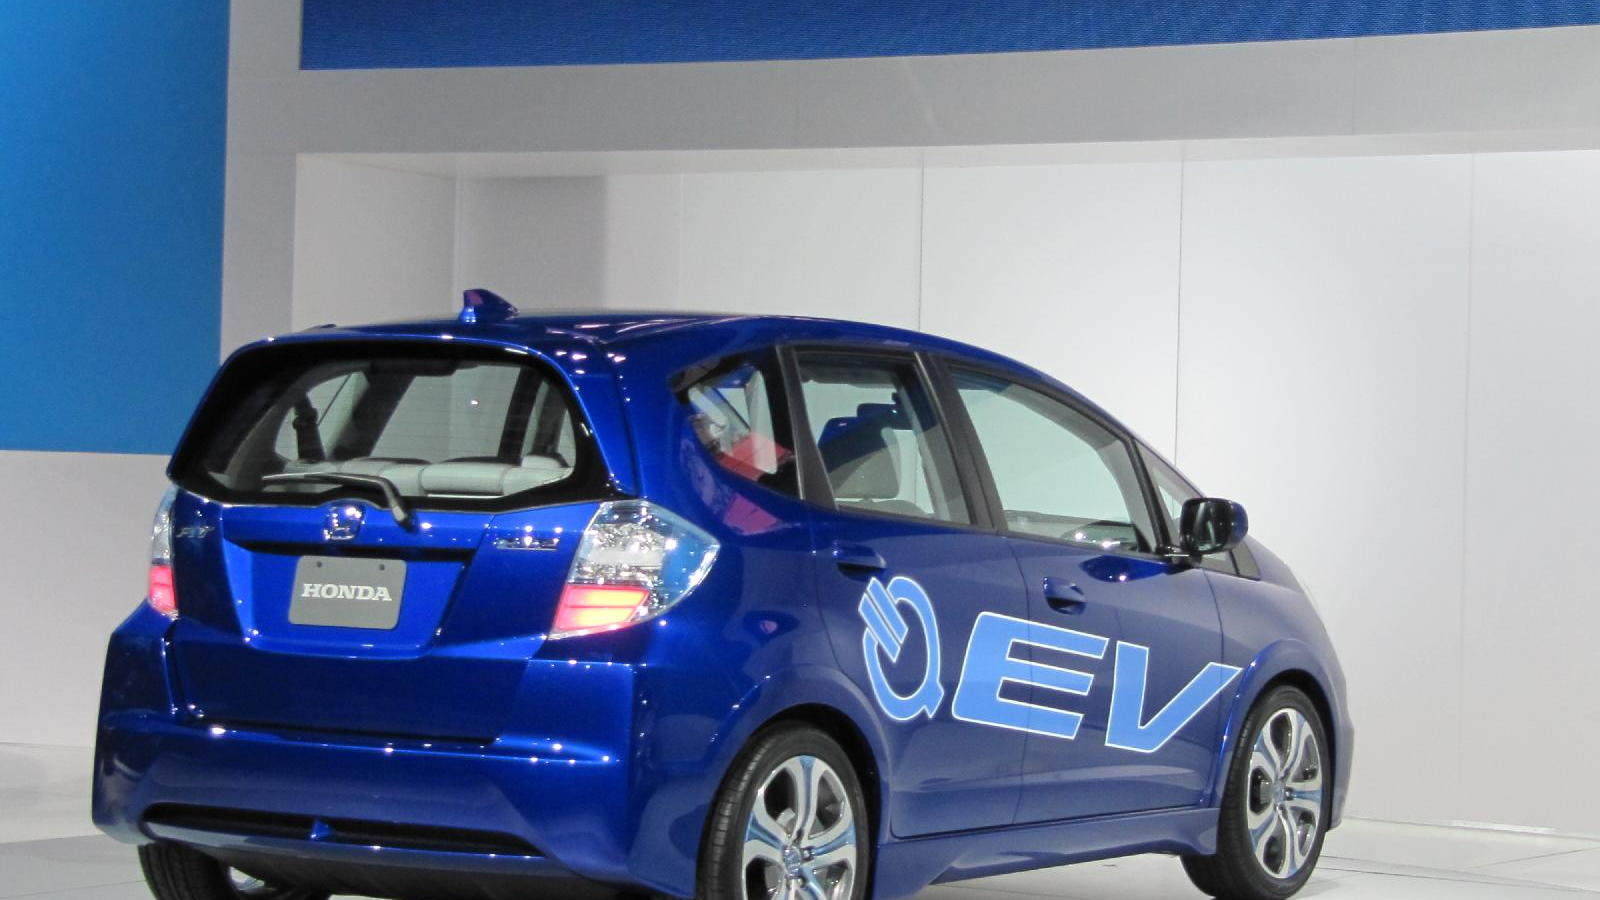 2012 Honda Fit EV electric car concept, launched at 2010 Los Angeles Auto Show